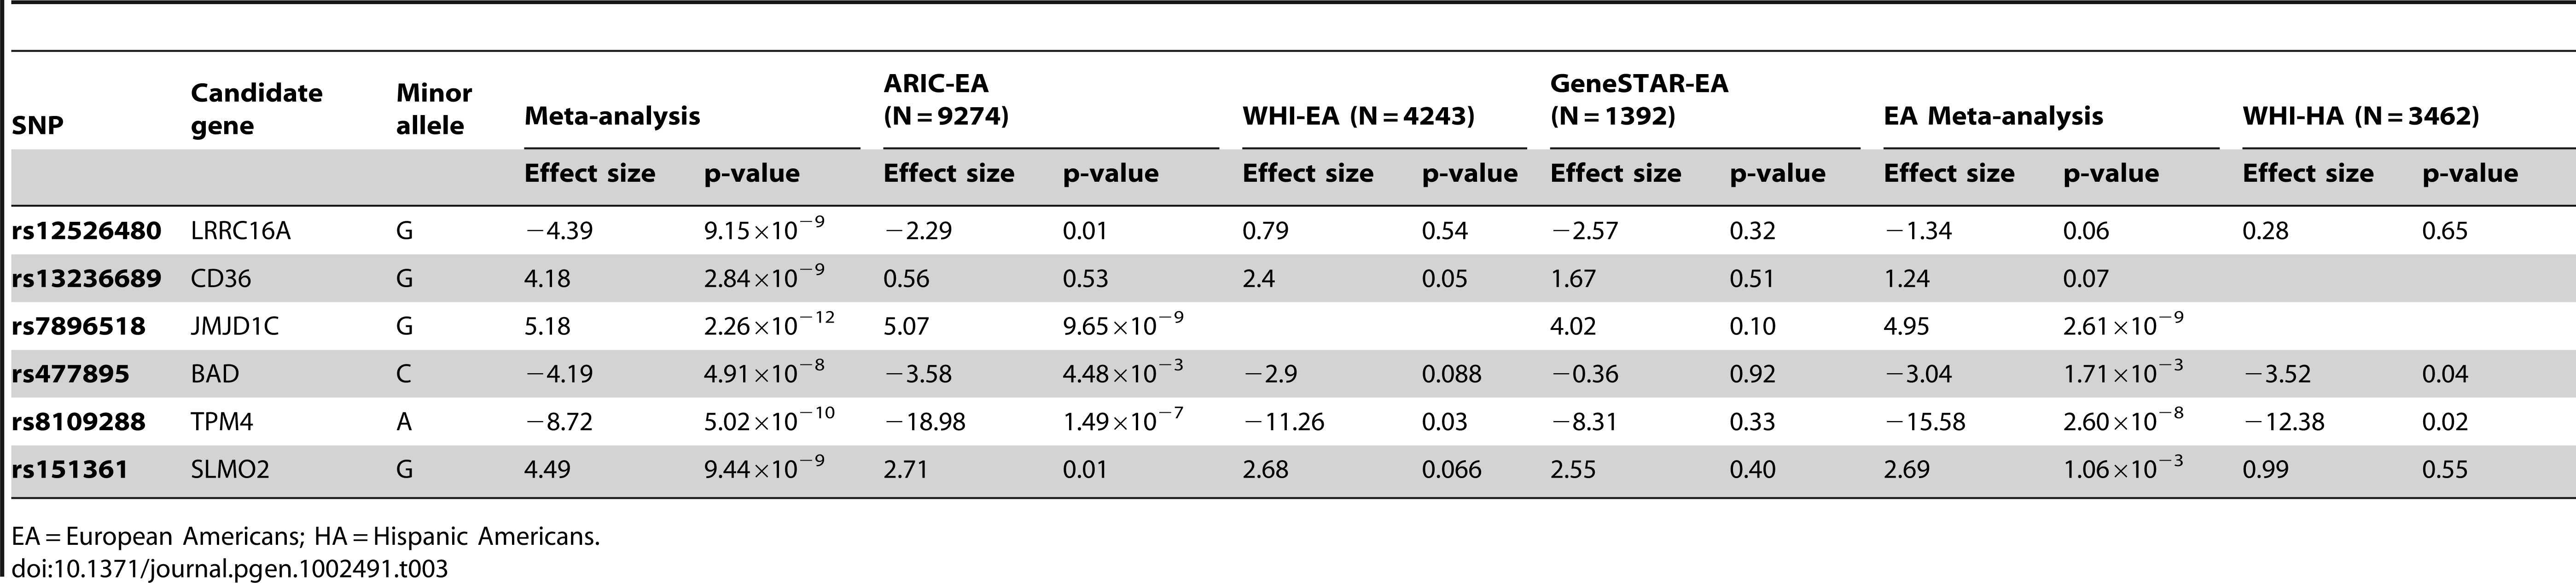 Replication of the association of the best SNPs from each novel region with platelet count in three European American cohorts and a Hispanic American cohort.